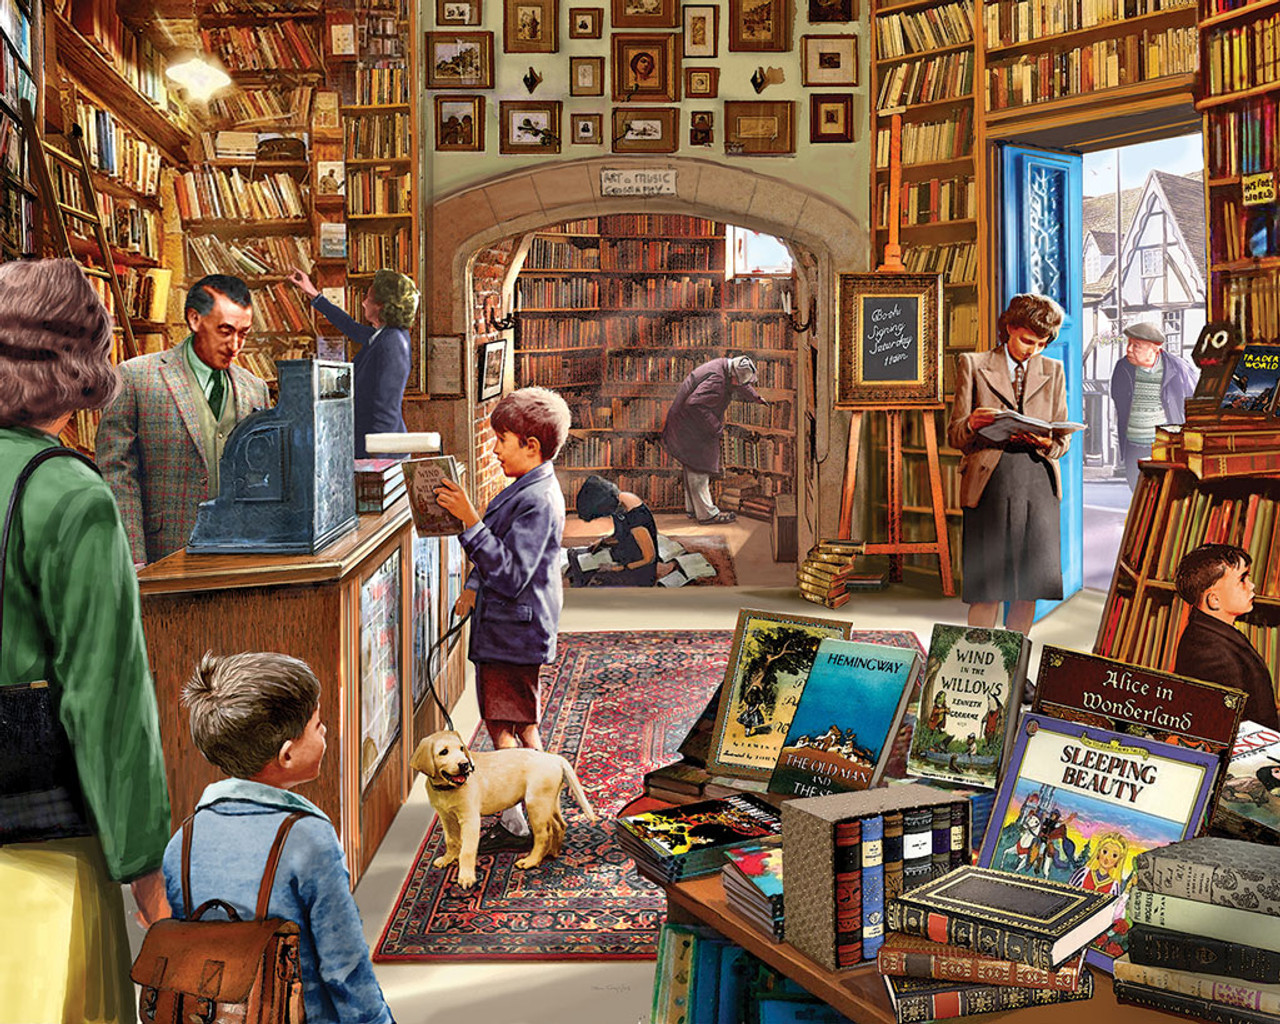 f41d3fdcb705 Cozy Book Shop - 300pc EZ Grip Jigsaw Puzzle by White Mountain ...